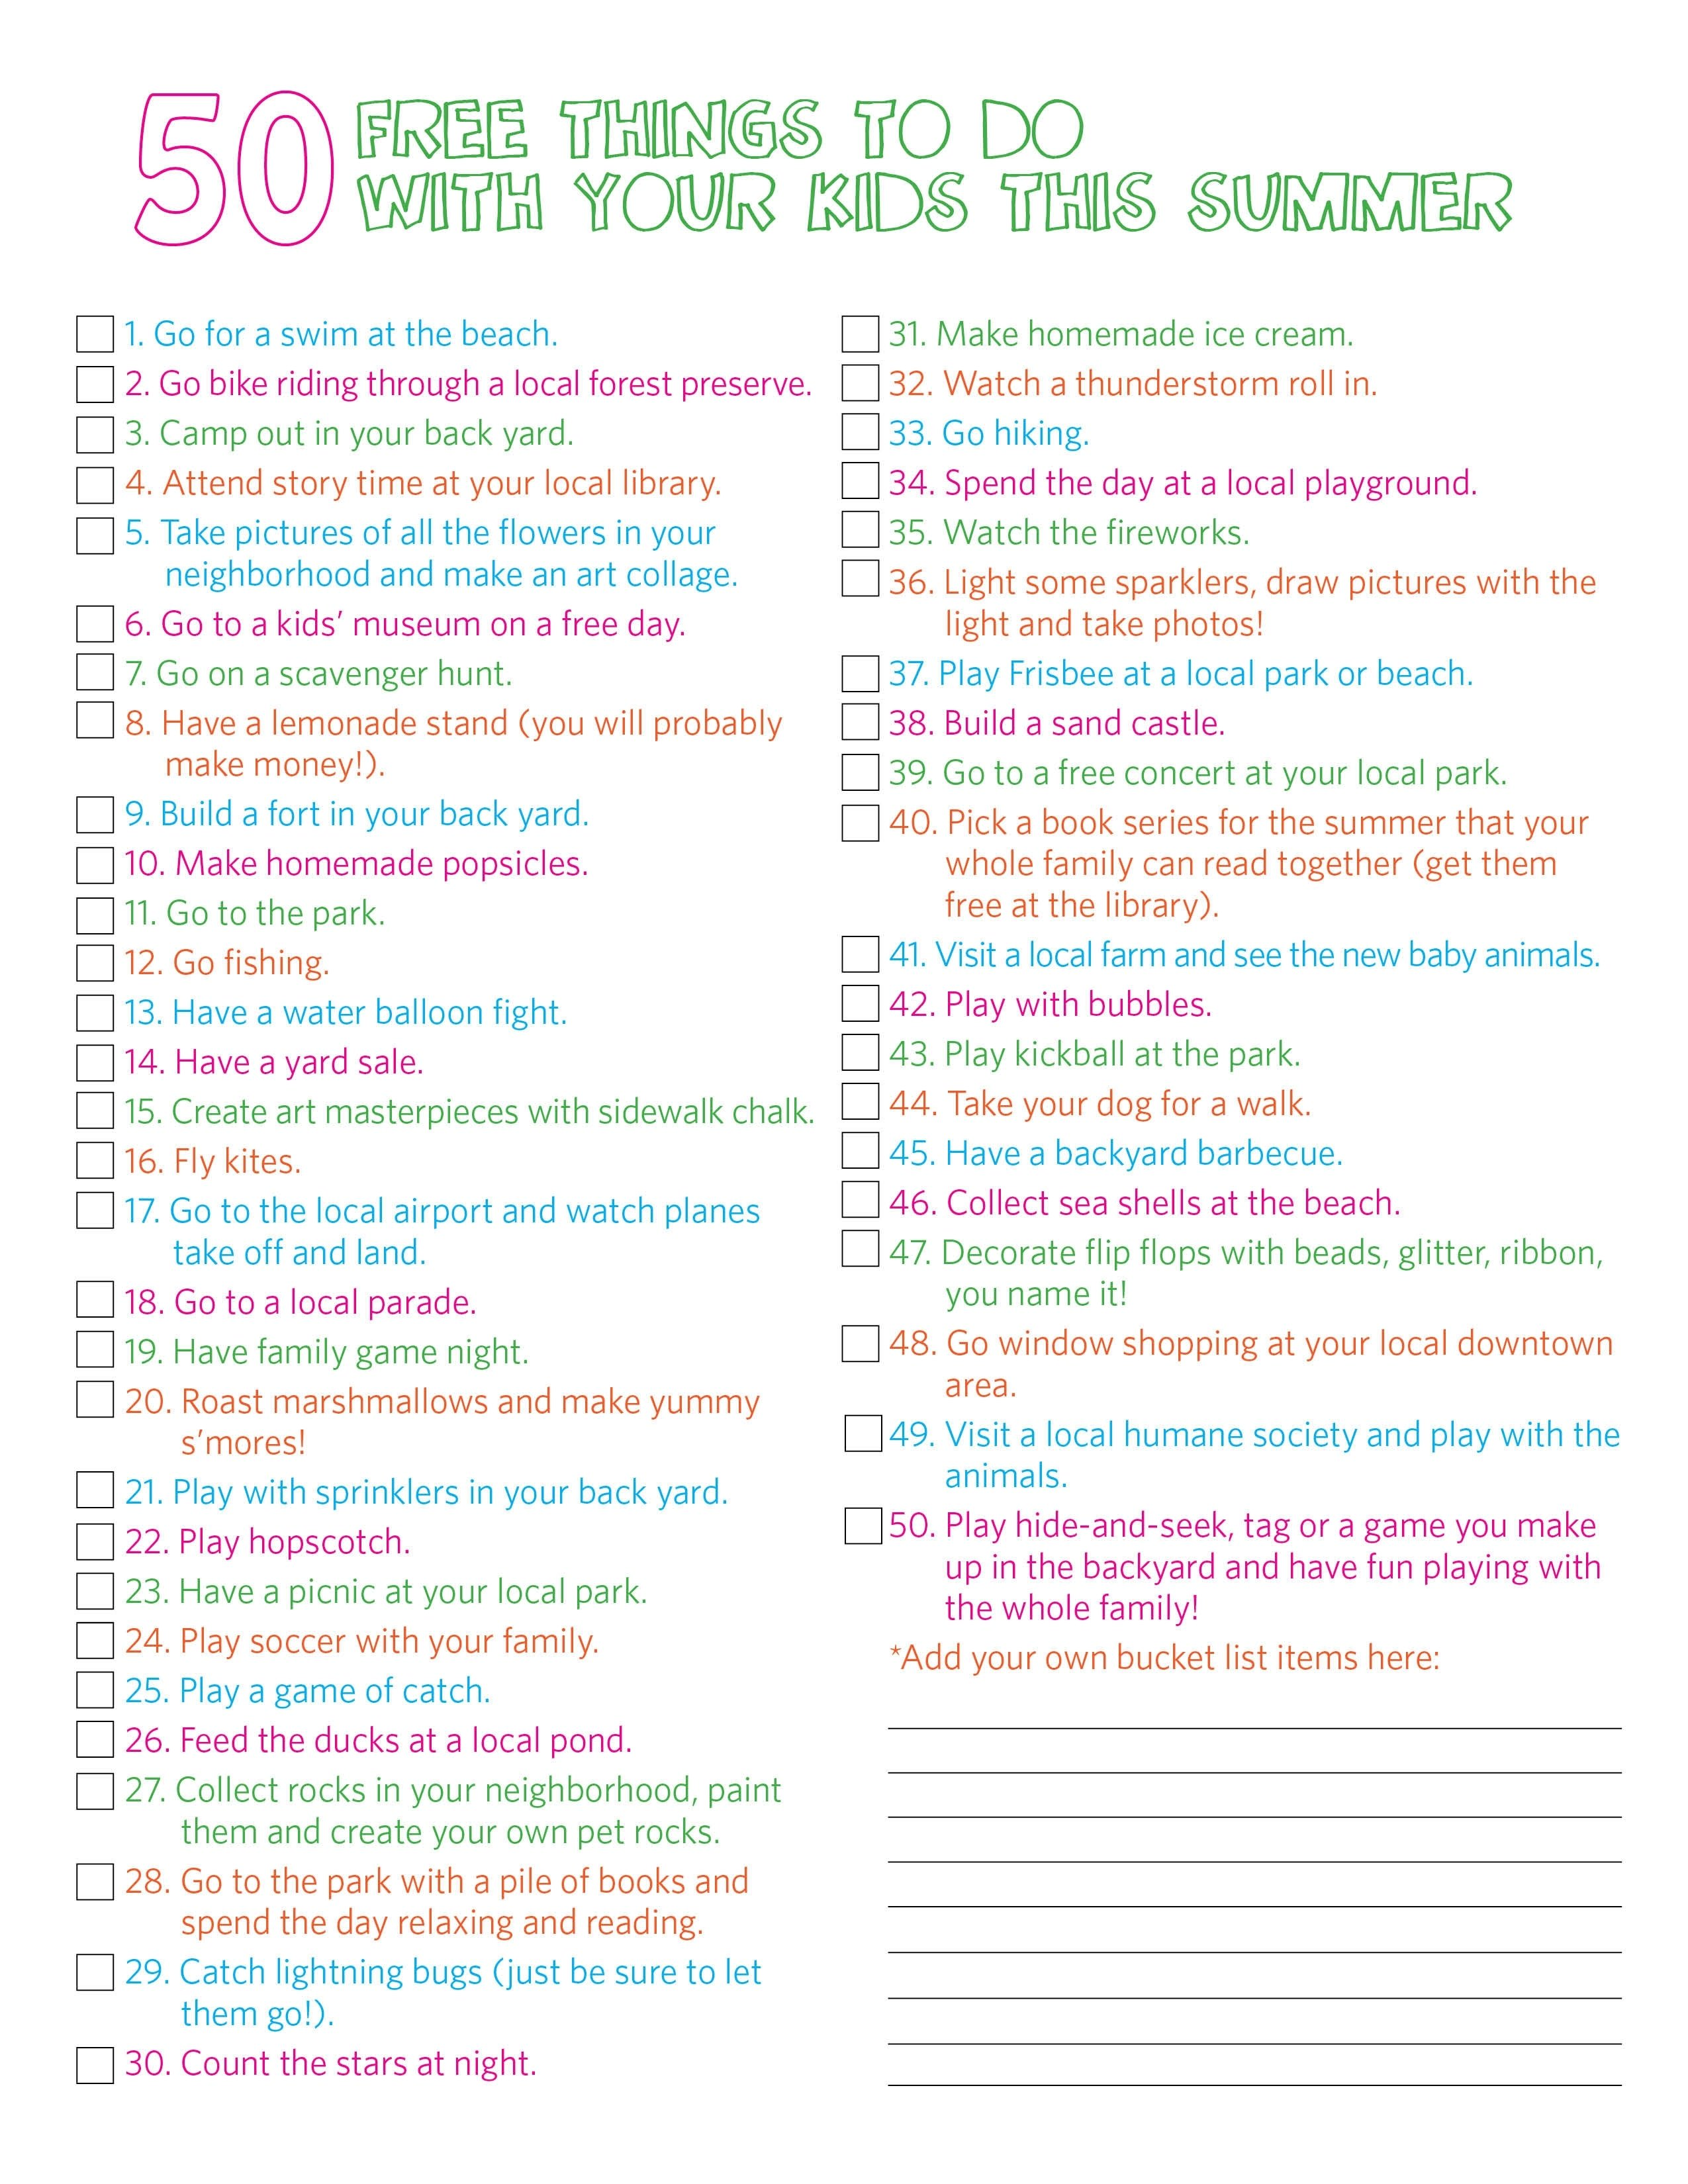 10 Nice Bucket List Ideas For Teenagers thrifty thursday this summers bucket list 50 free things to do 1 2020